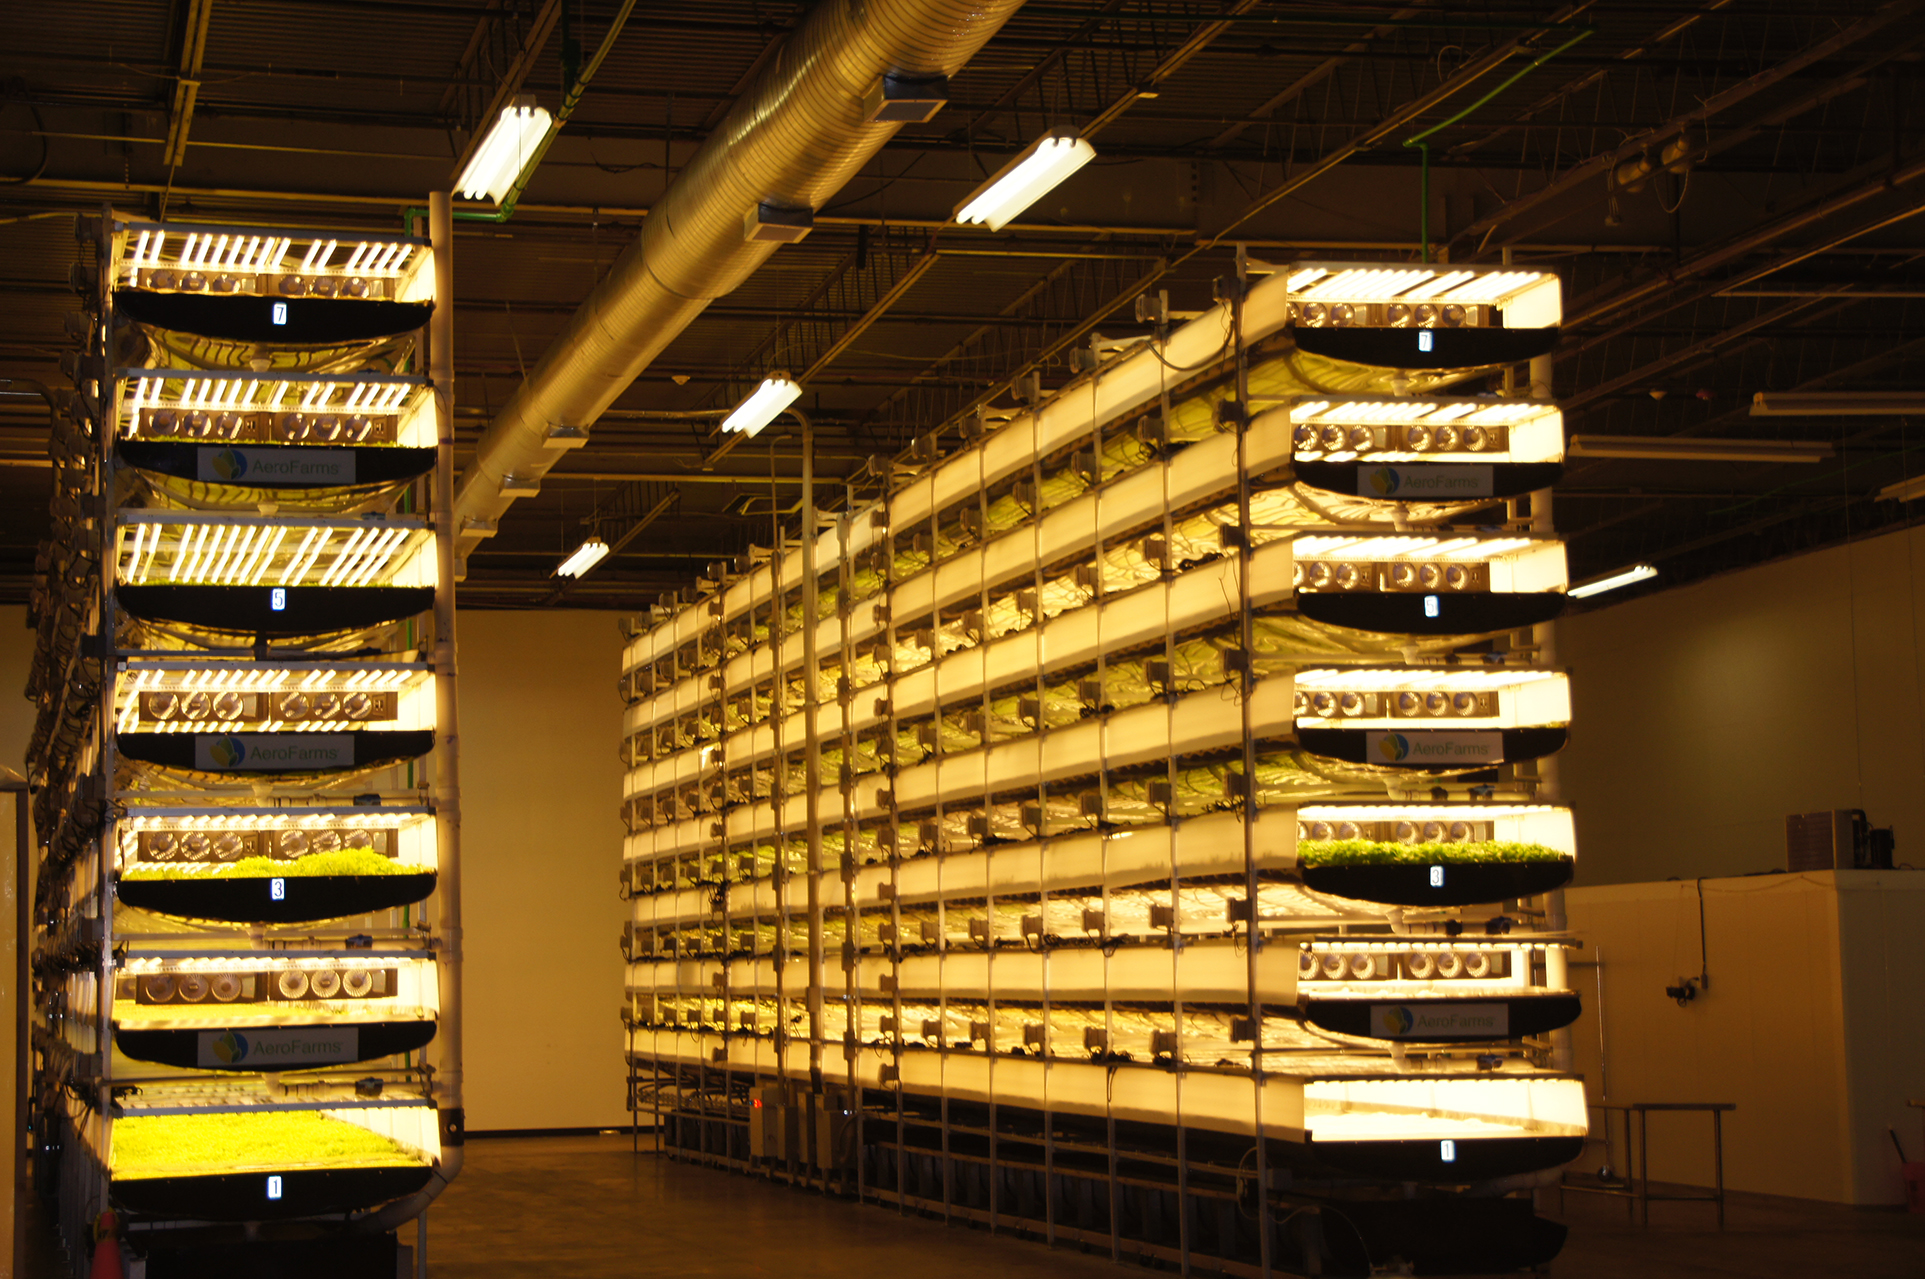 Can Vertical Farms Help Solve Safety Issues? - Food Quality & Safety